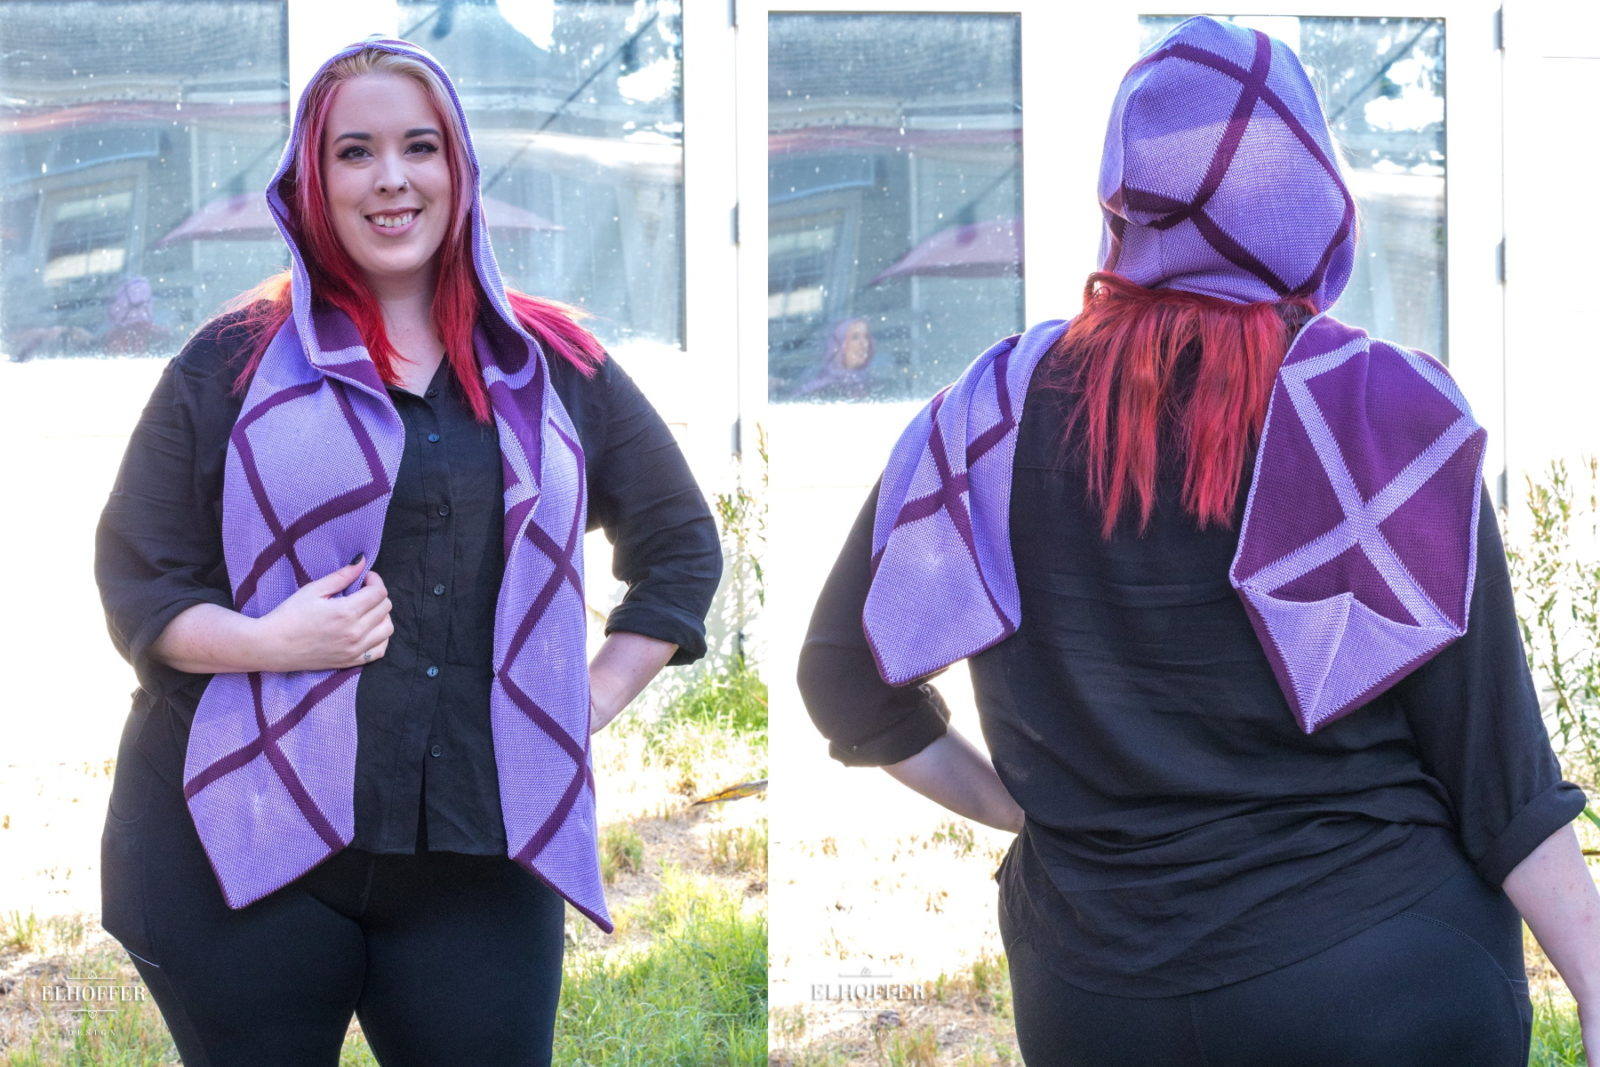 Galactic Queen Hooded Scarf by Elhoffer Design